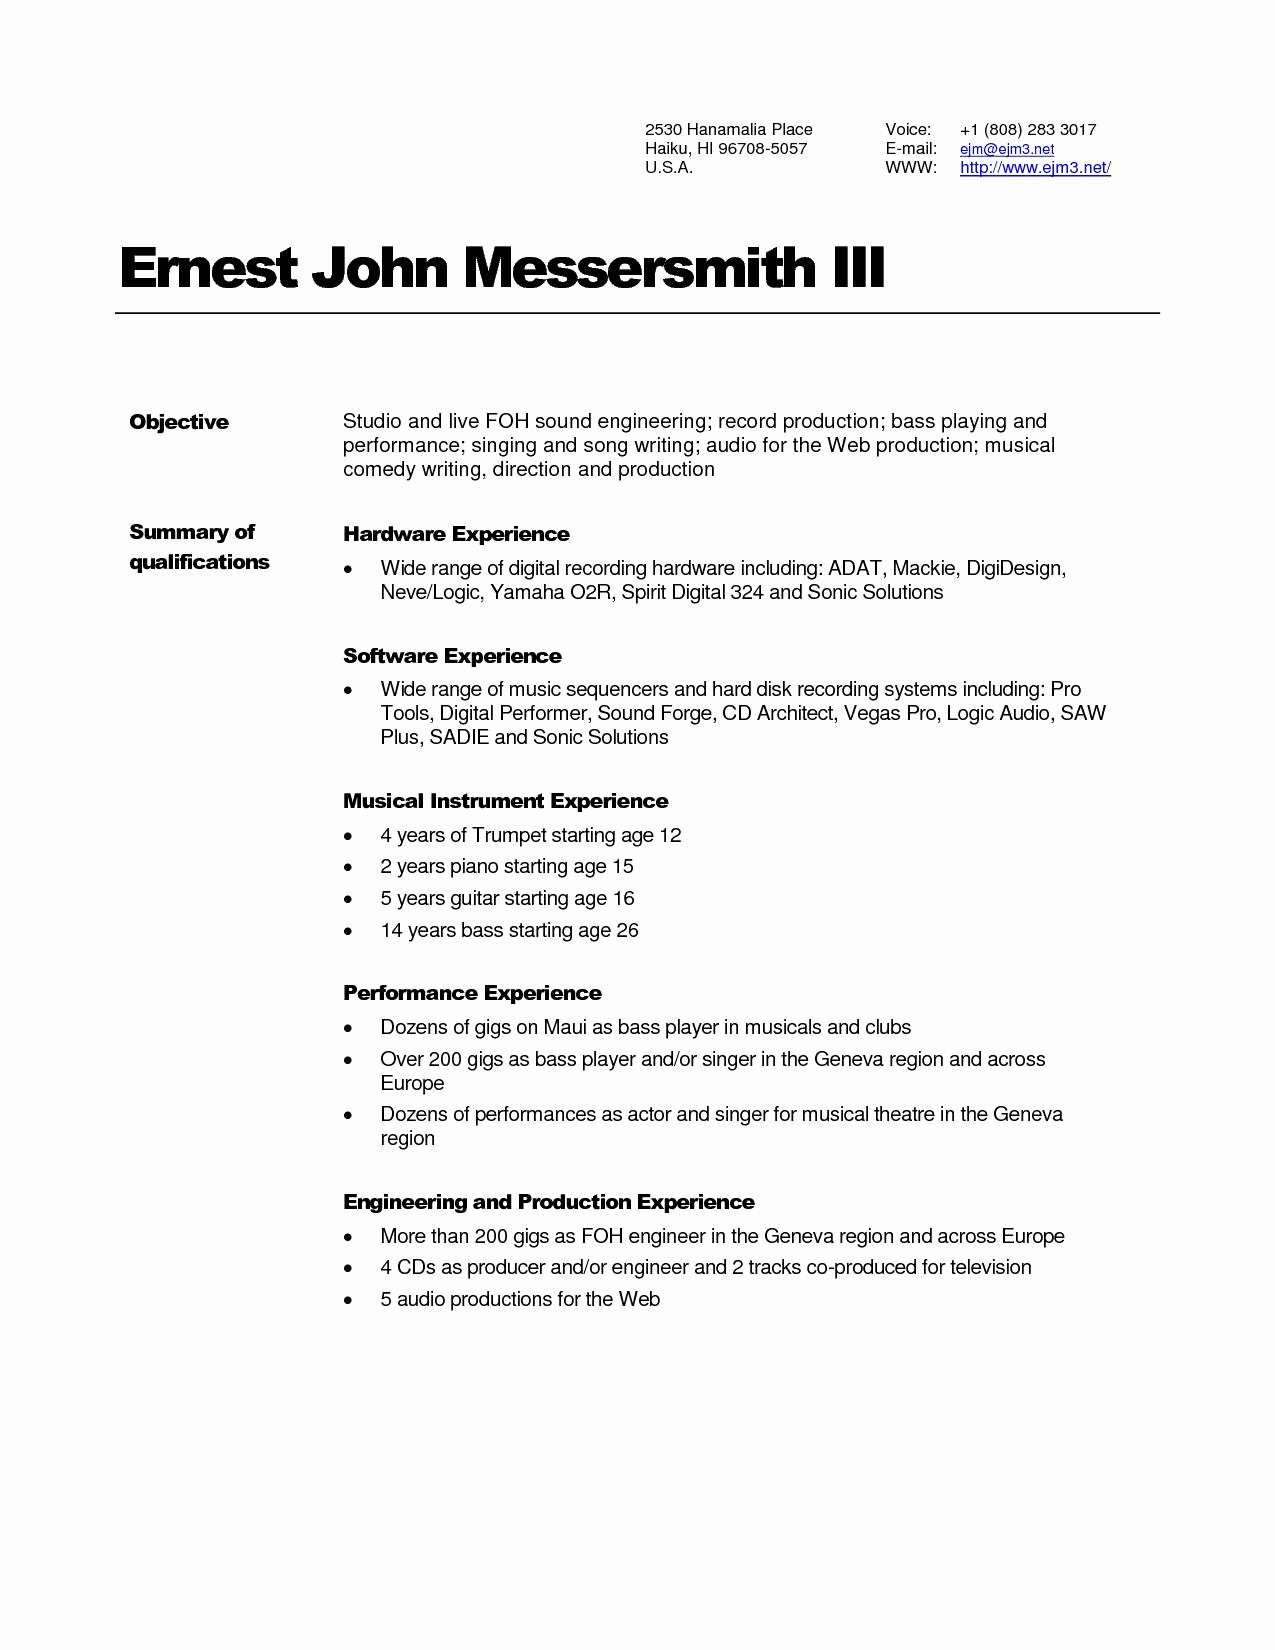 Audio Engineer Resume - Audio Engineer Resume Awesome 14 Best Resumes Pinterest Sample